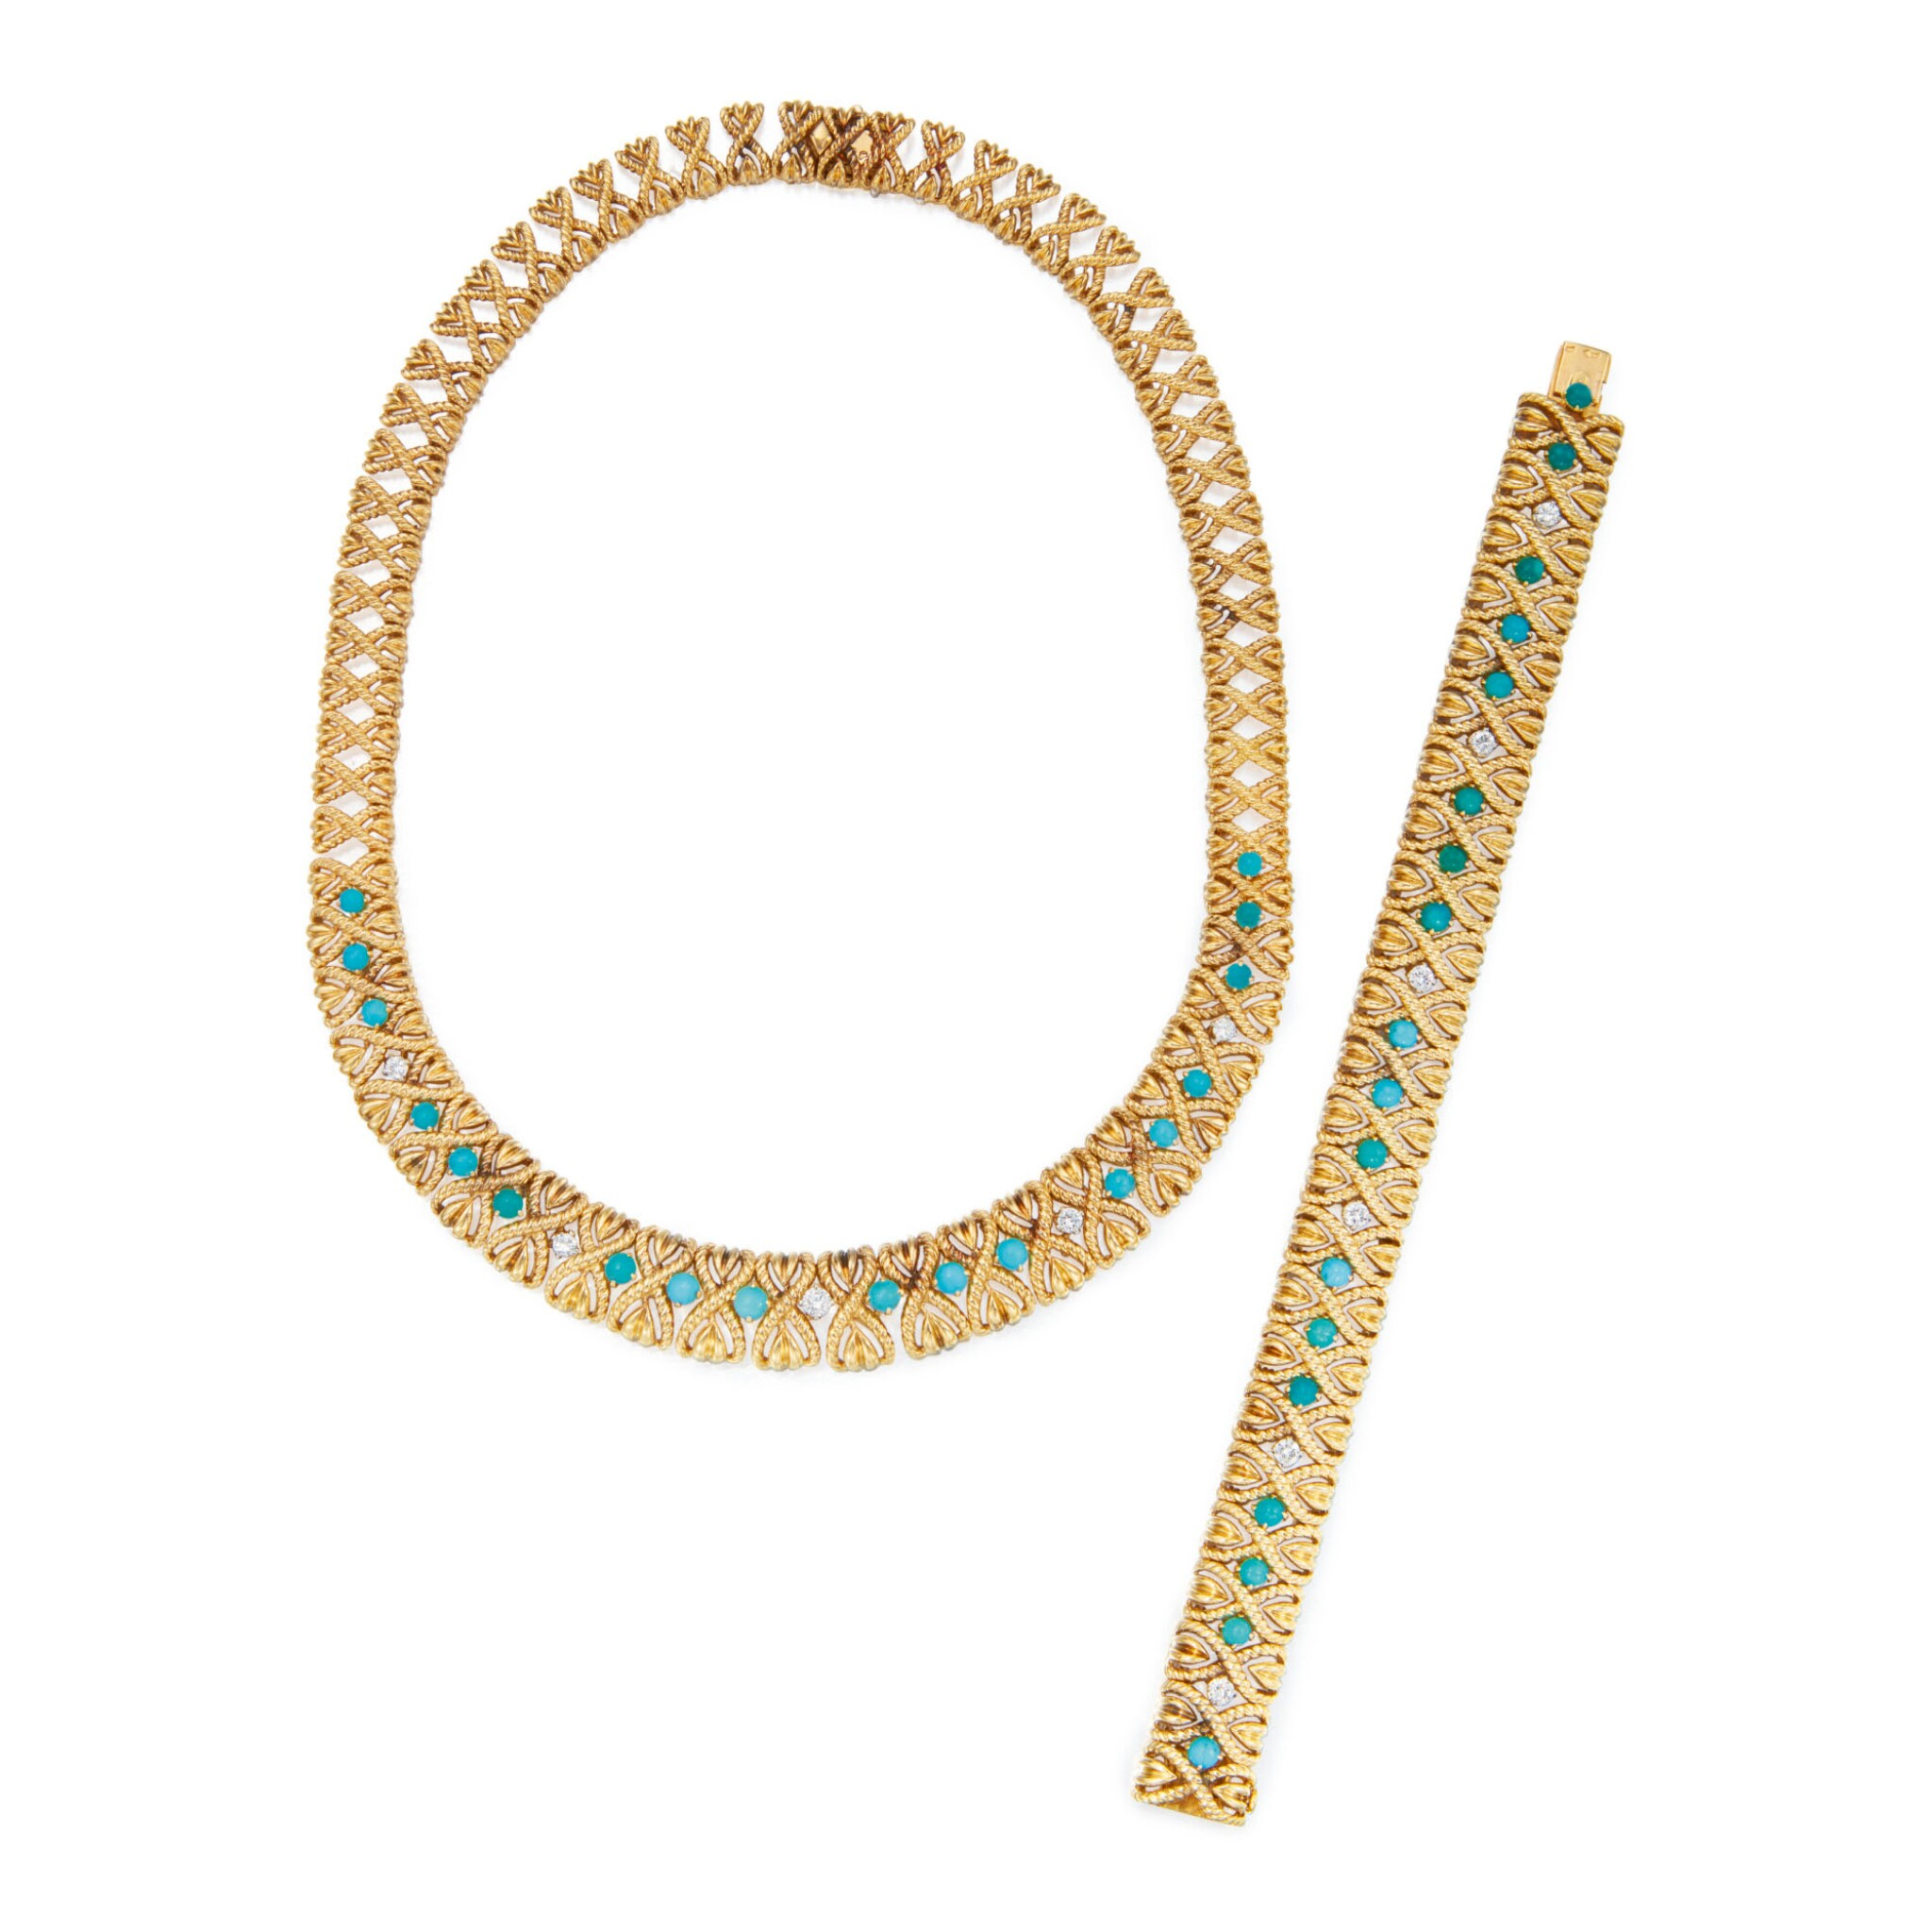 View full screen - View 1 of Lot 292. GOLD, TURQUOISE AND DIAMOND NECKLACE AND BRACELET, VAN CLEEF & ARPELS, FRANCE.